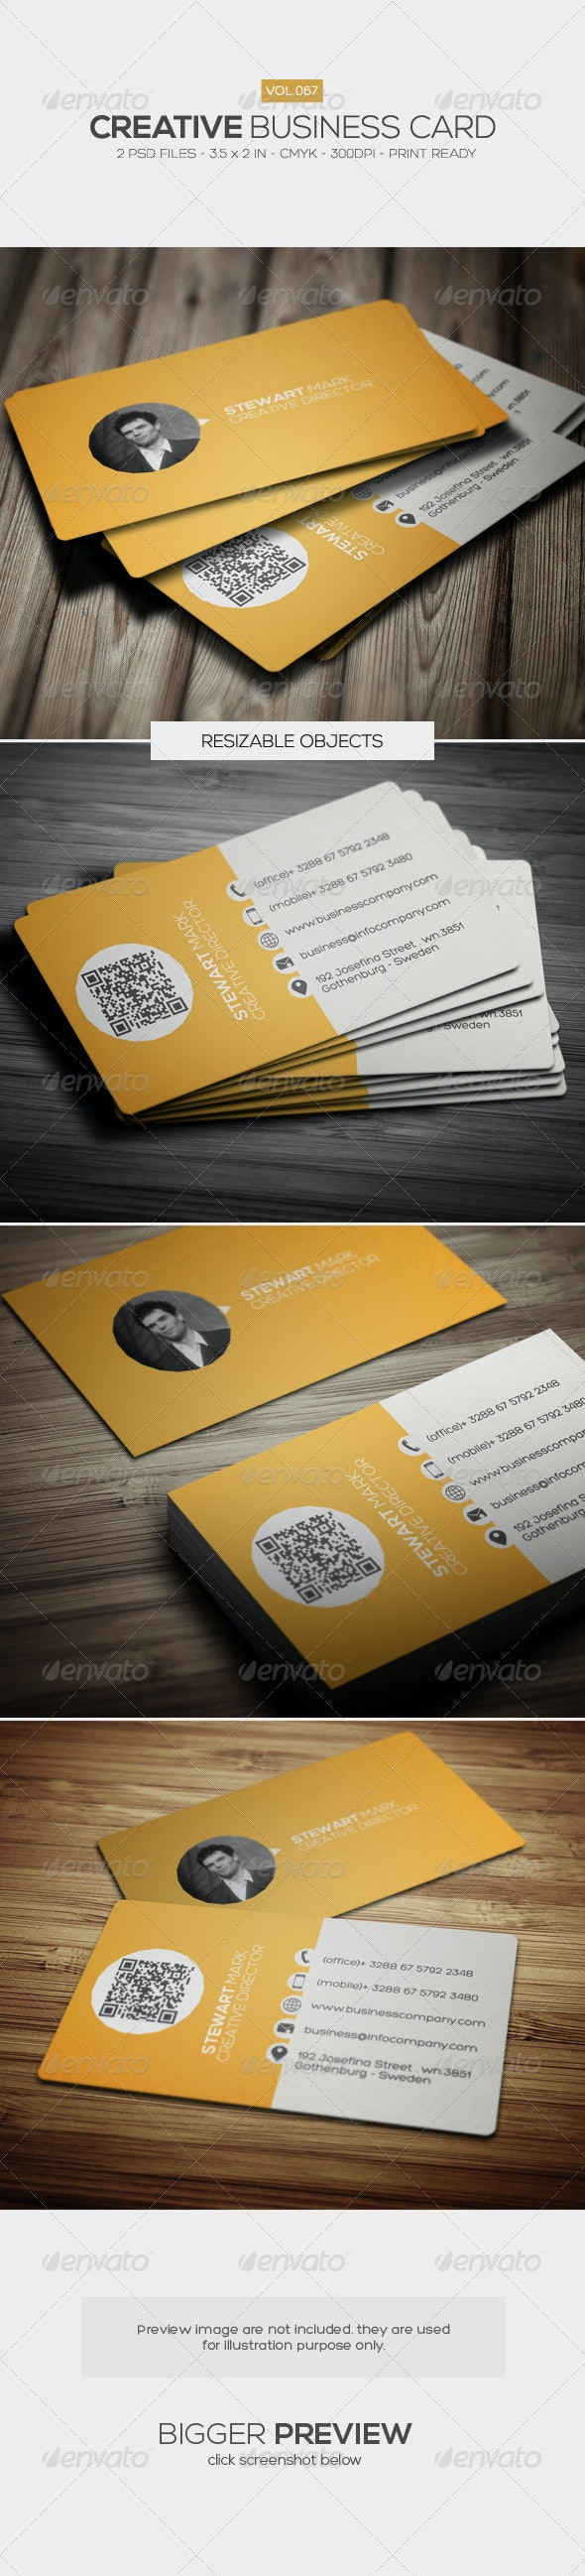 Creative Business Card 067 - Creative Business Cards